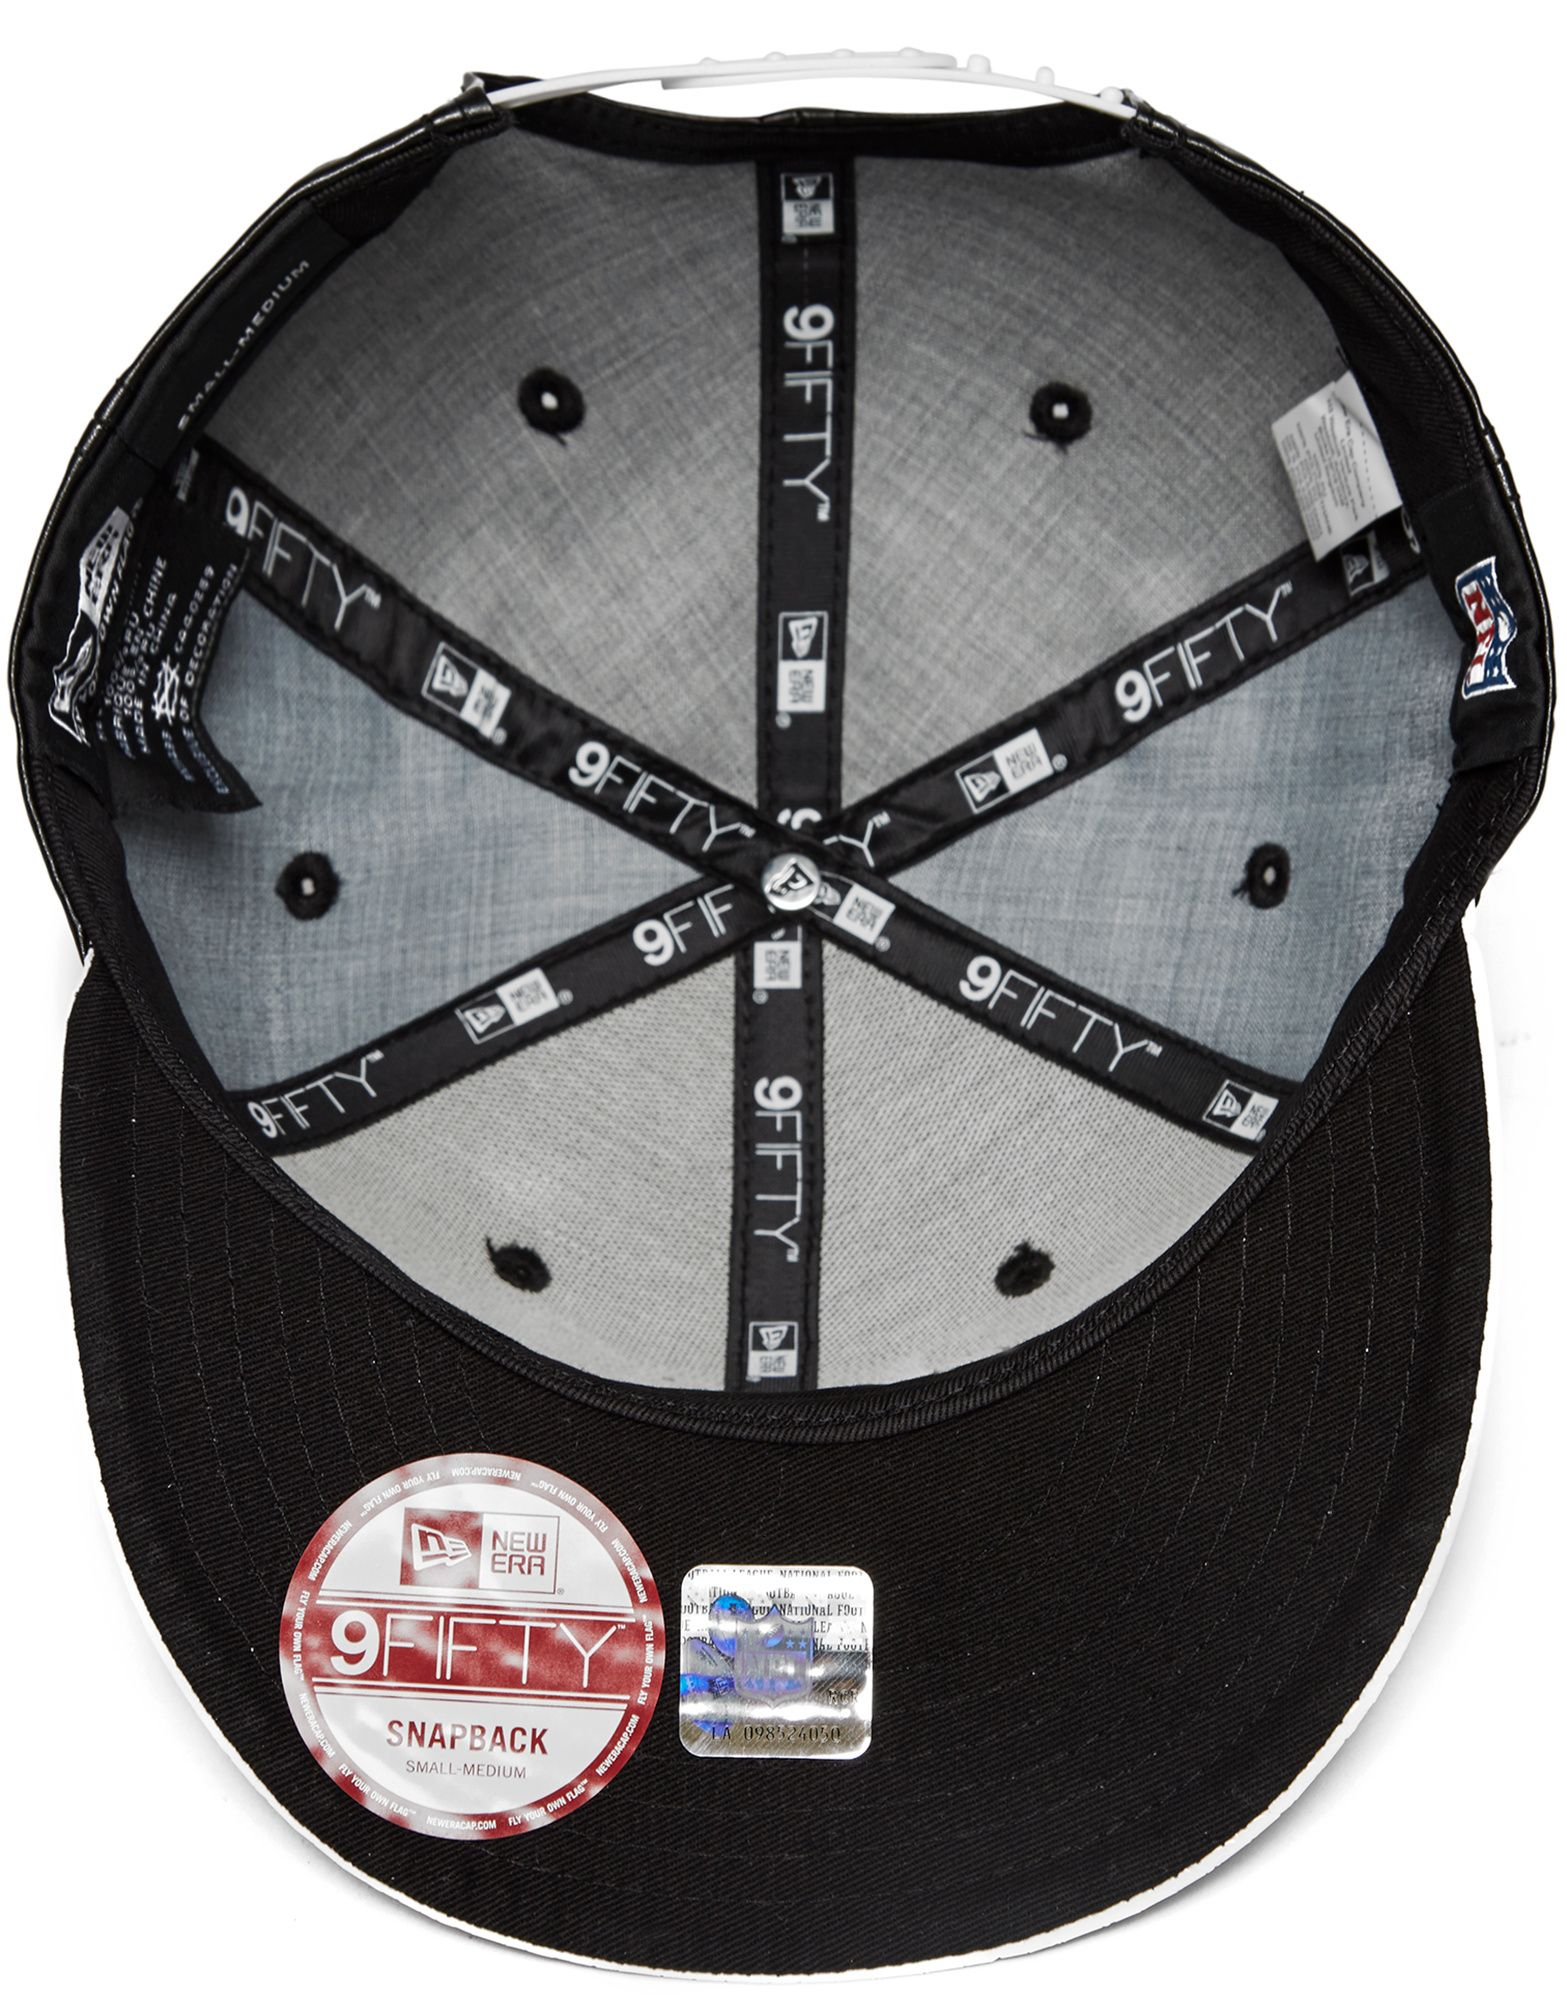 New Era NFL New York Giants 9FIFTY Snapback Cap